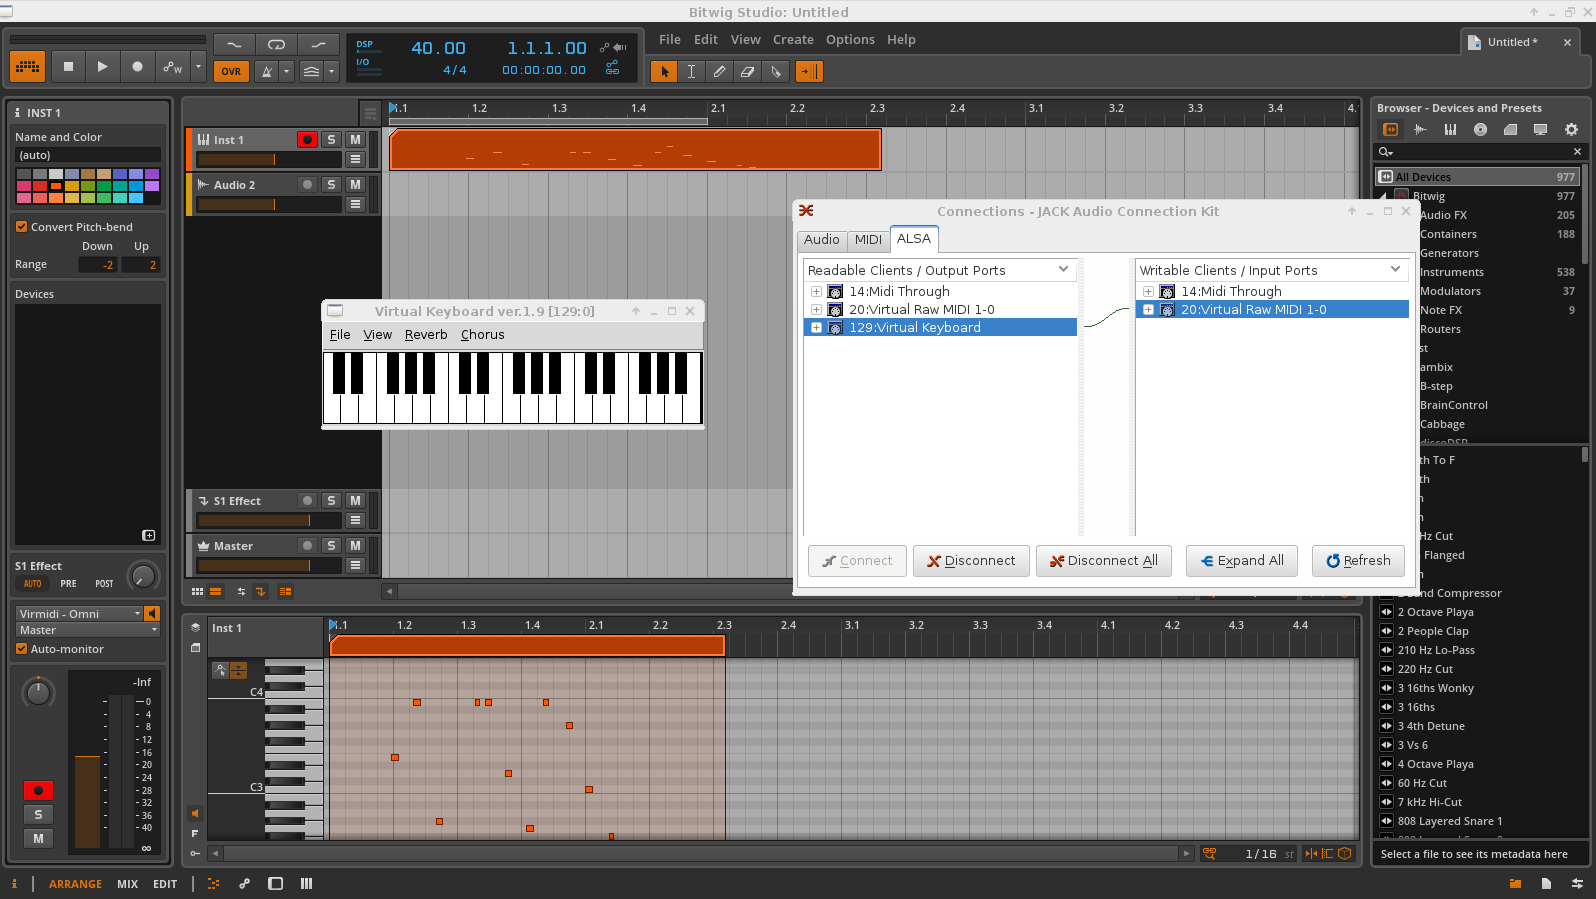 native VST synths/other plugins for Linux ? UPDATE 4/15/2015